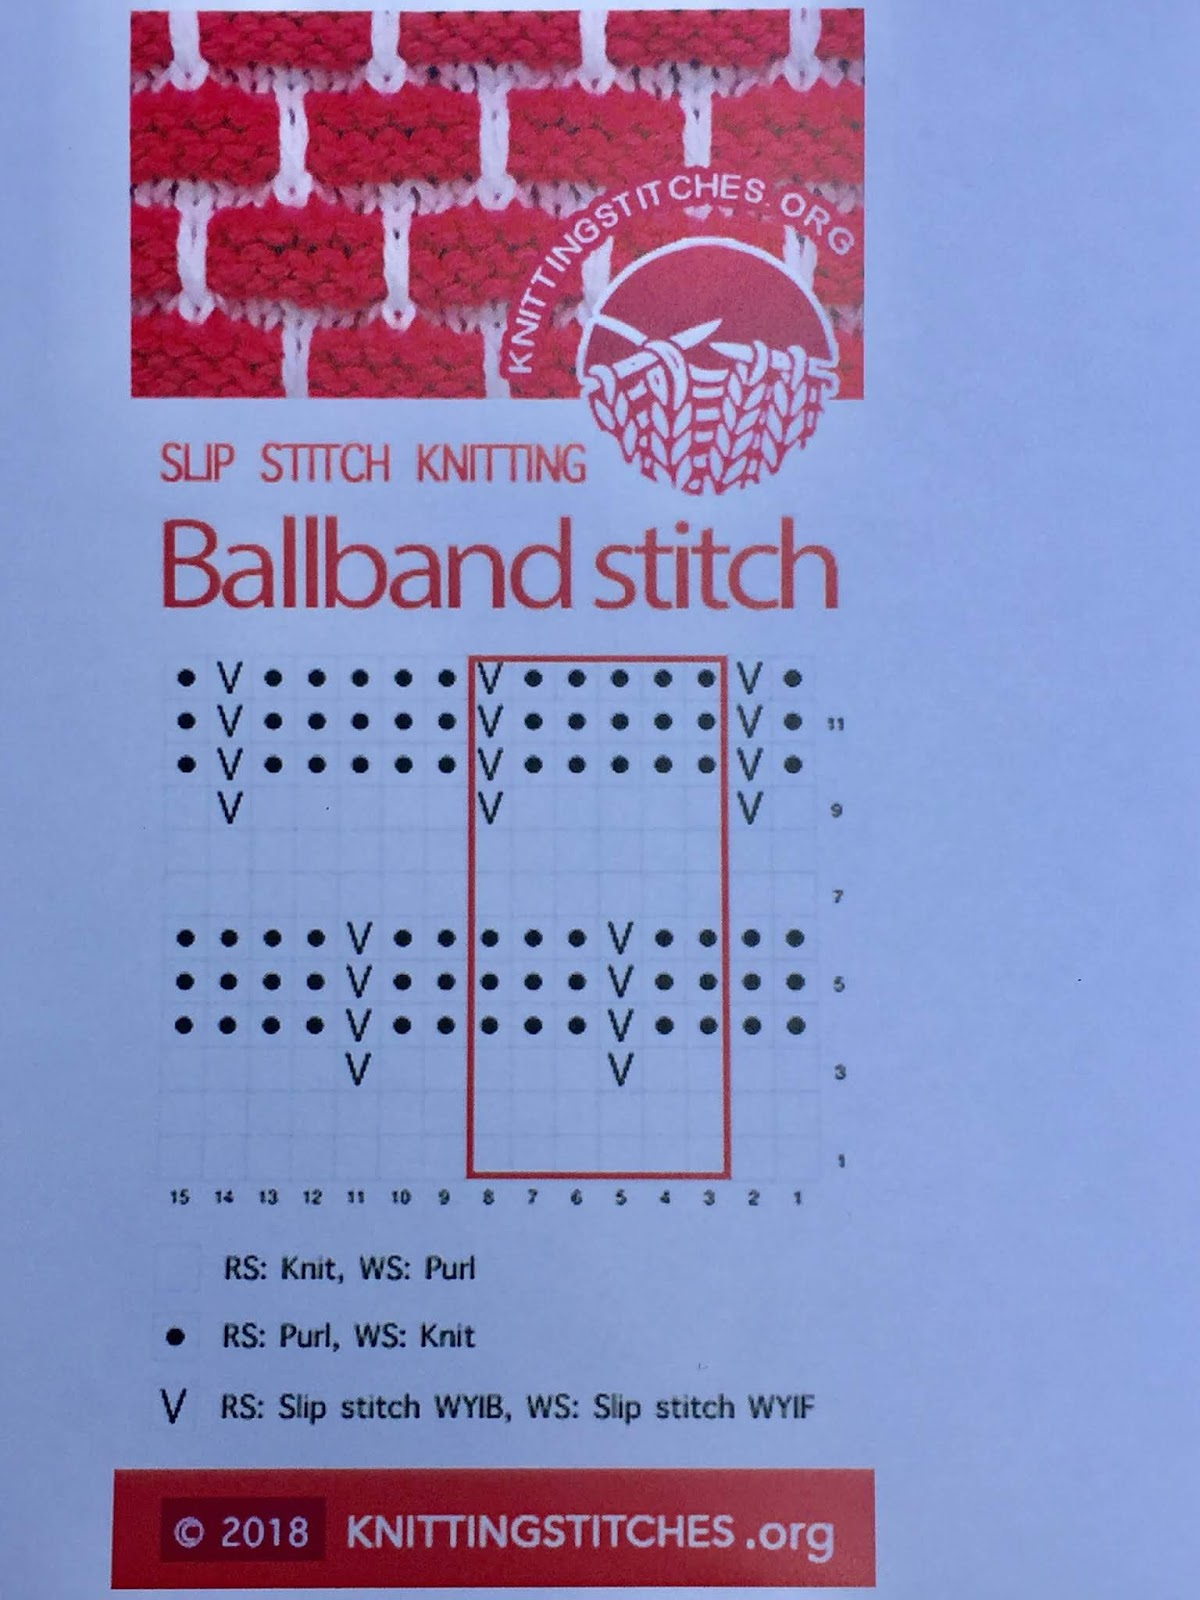 Knitting Stitches 2018 -  Ballband